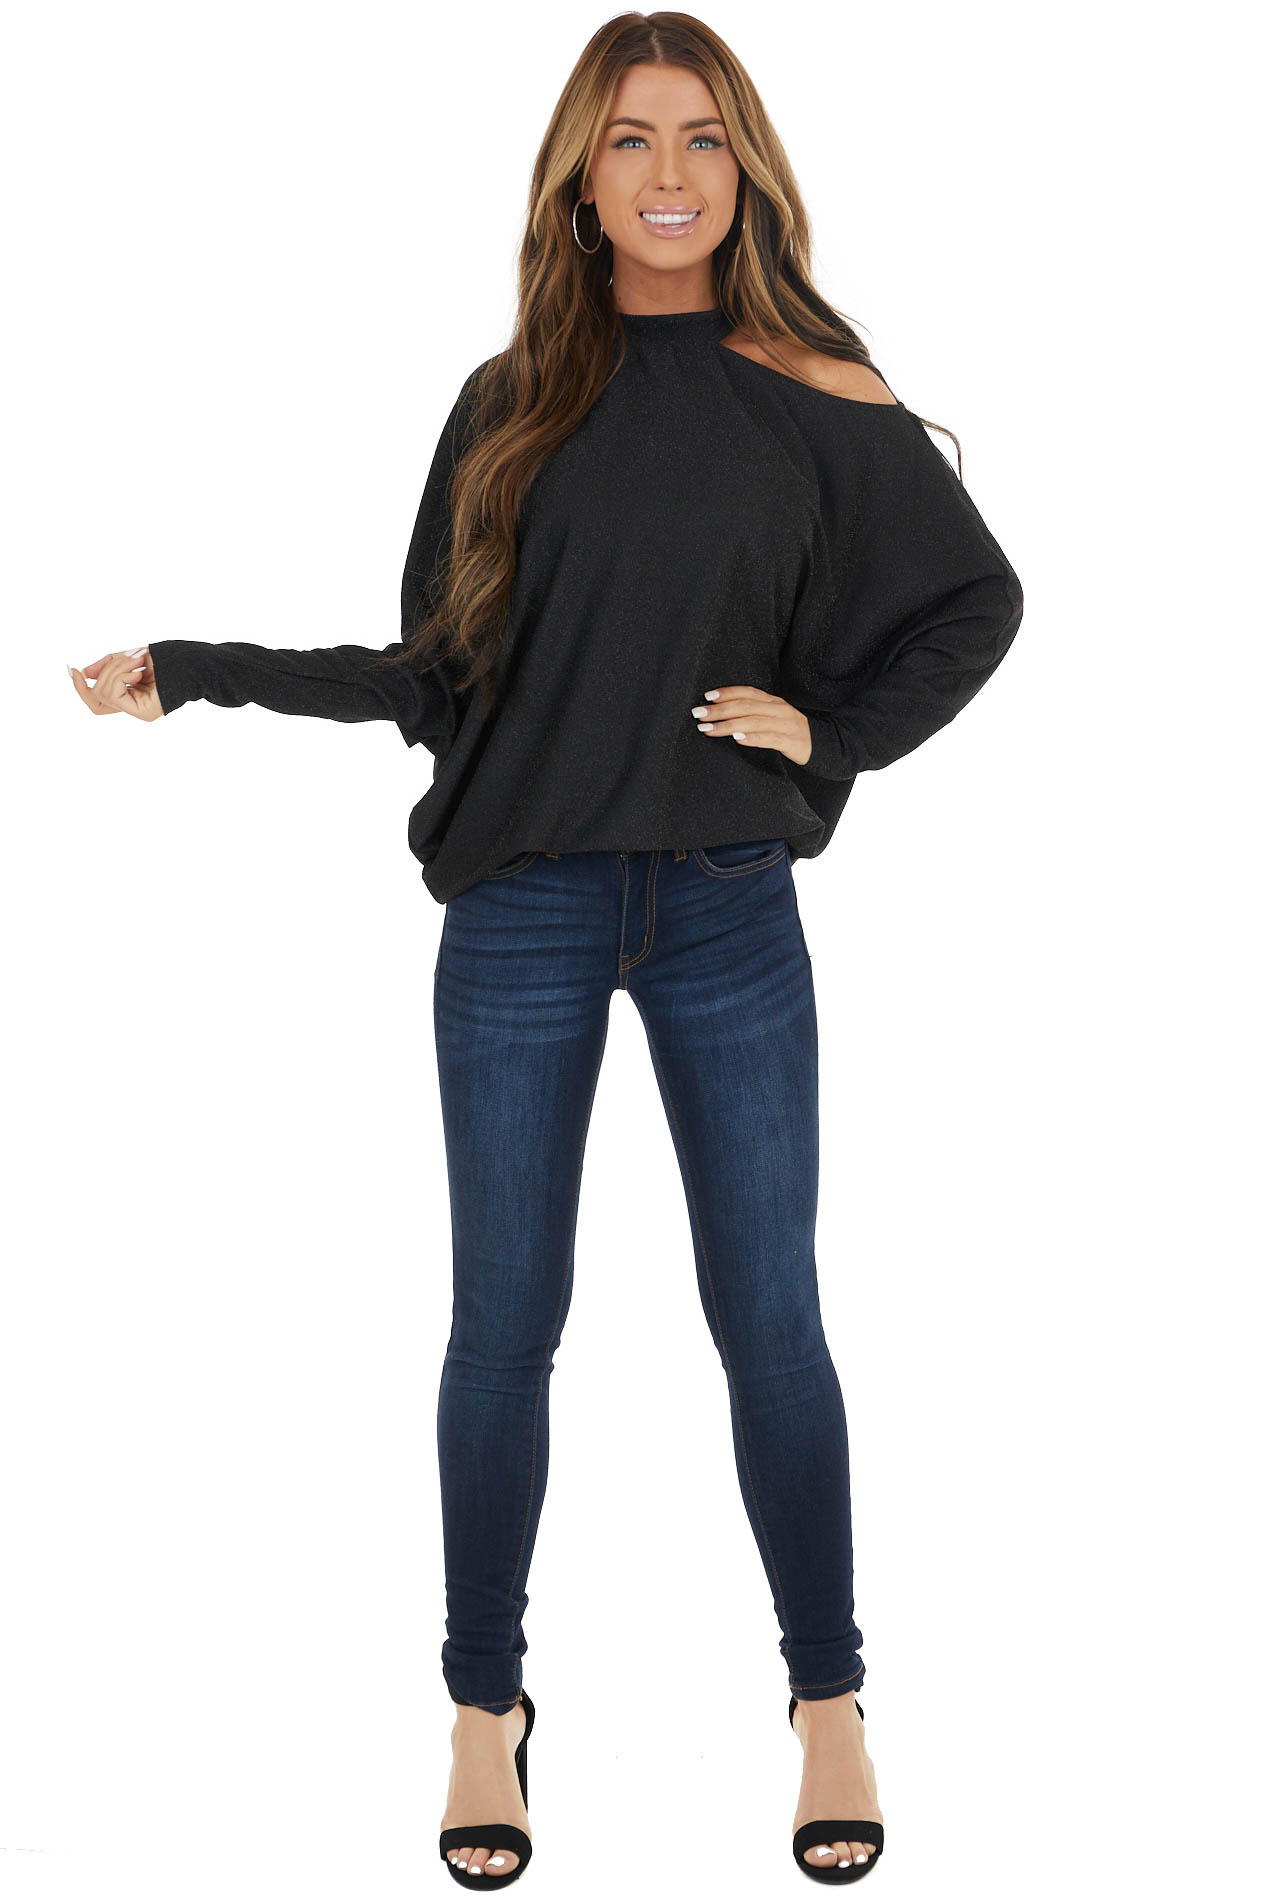 Black Sparkly Dolman Sleeve Top with Shoulder Cutout